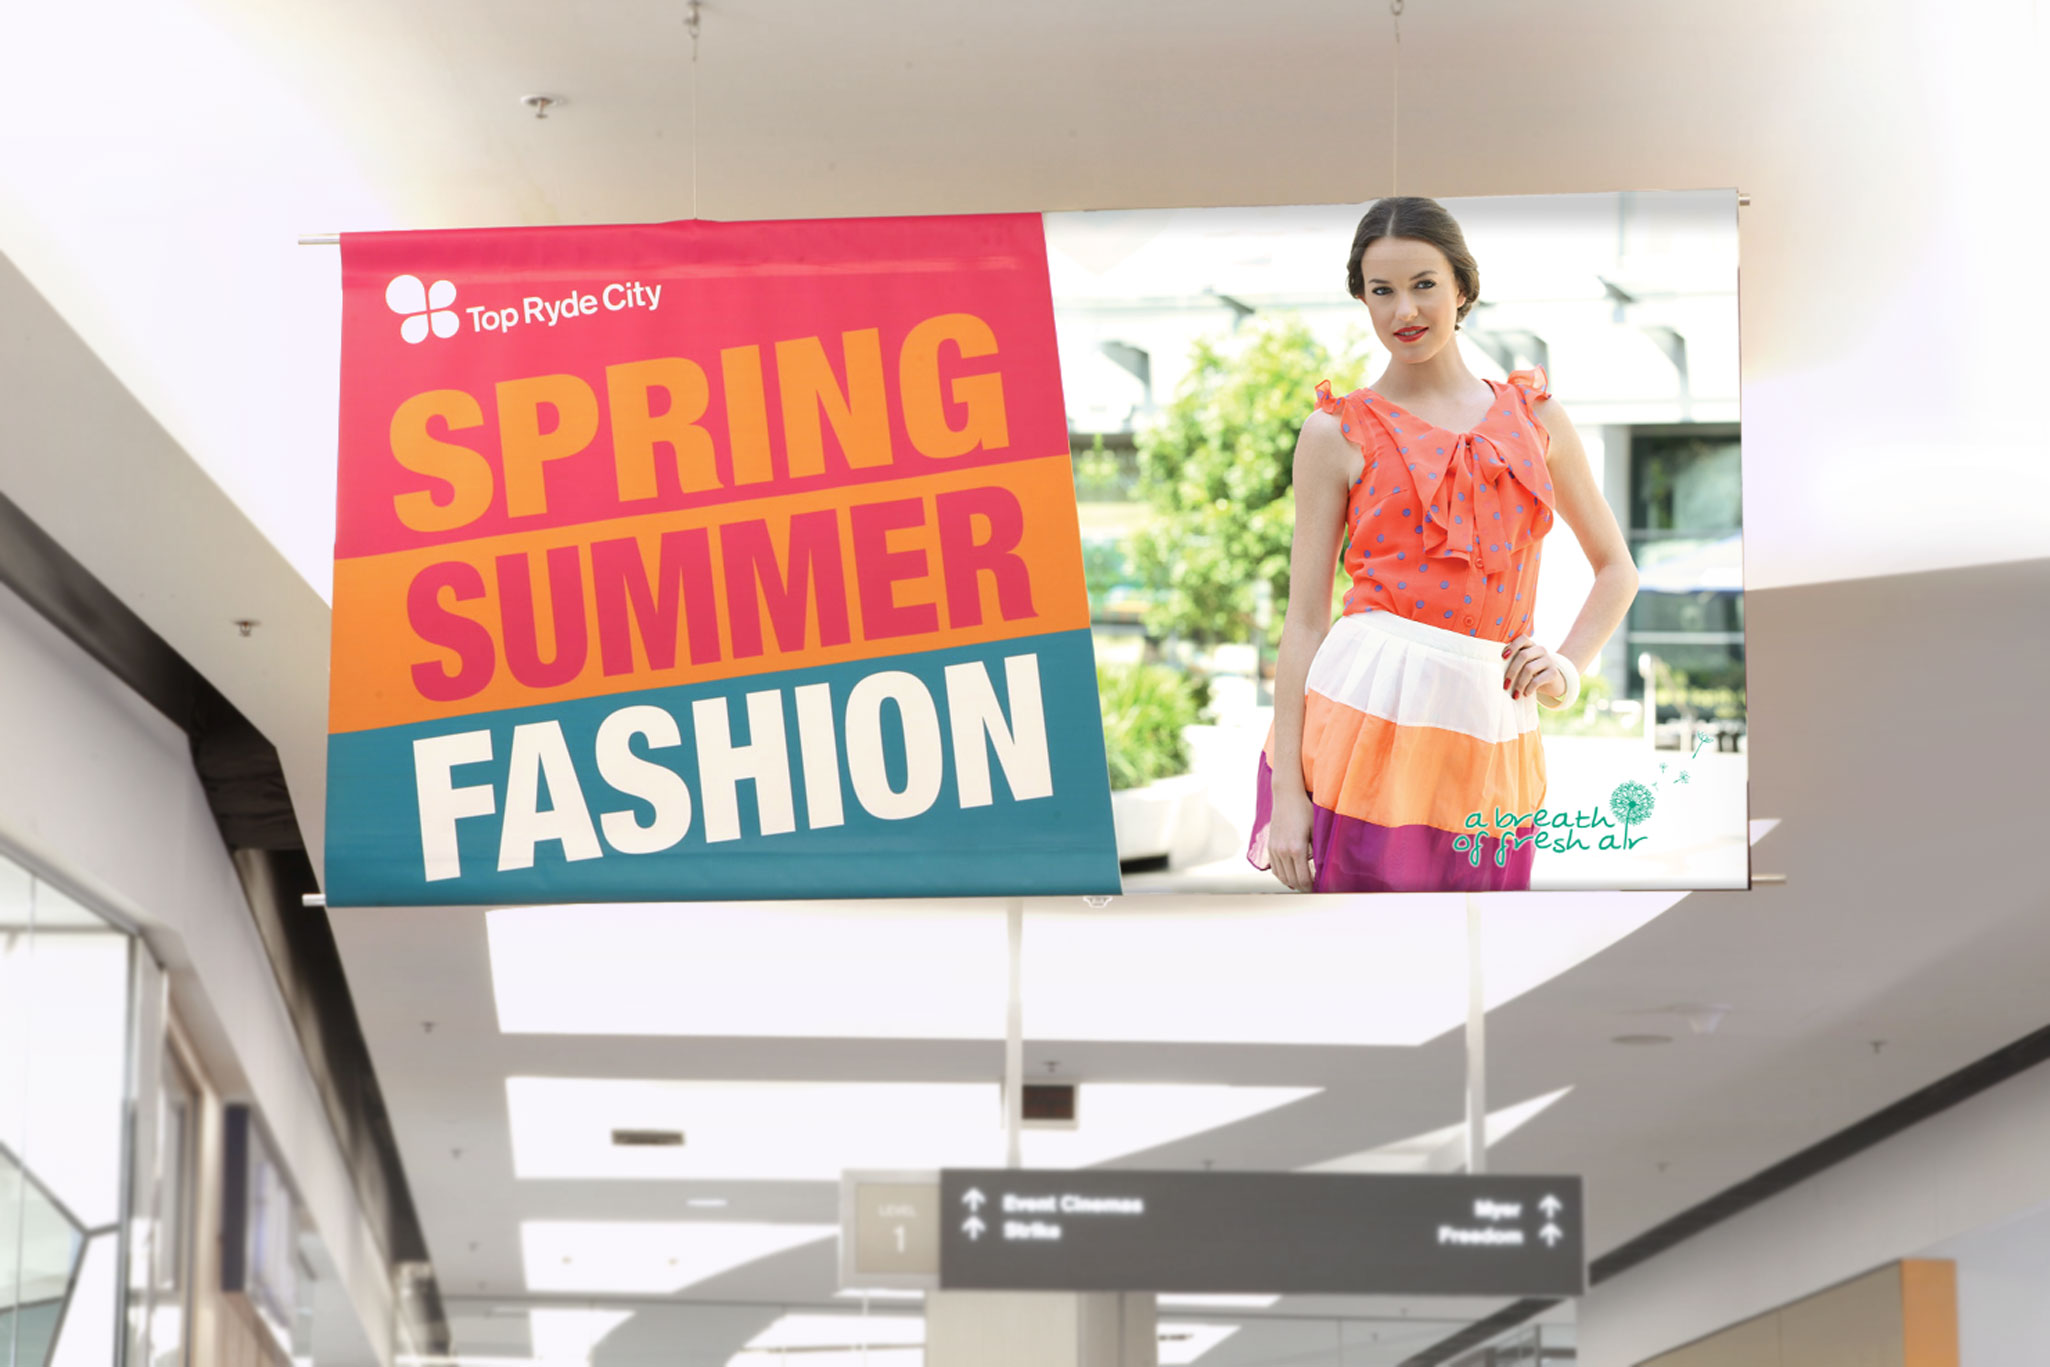 Top_Ryde_City_Indoor_Ad_Spring-Summer_2012.jpg